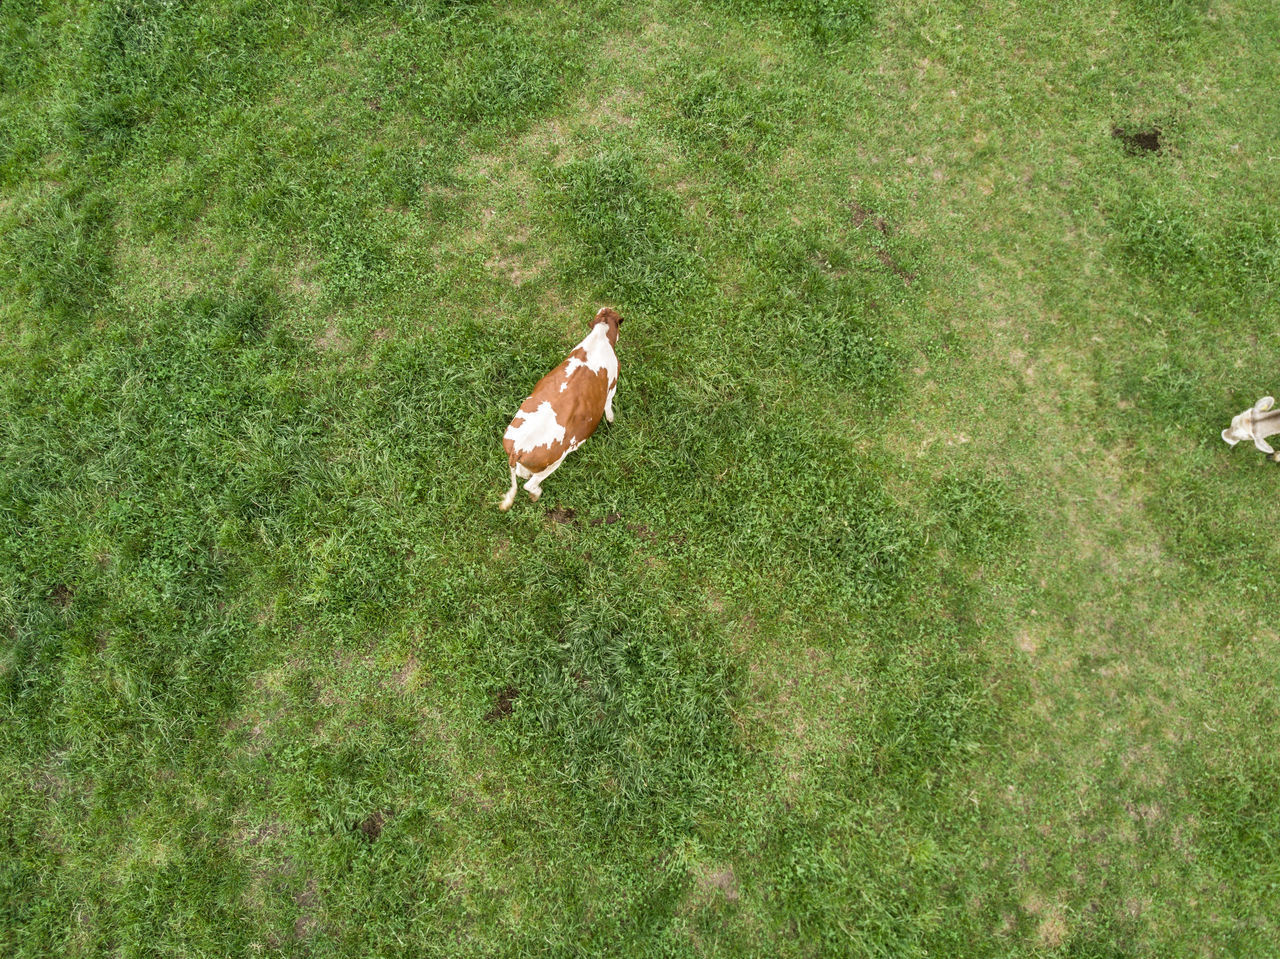 grass, animal themes, high angle view, one animal, field, nature, bird, green color, no people, day, domestic animals, growth, livestock, animals in the wild, outdoors, beauty in nature, mammal